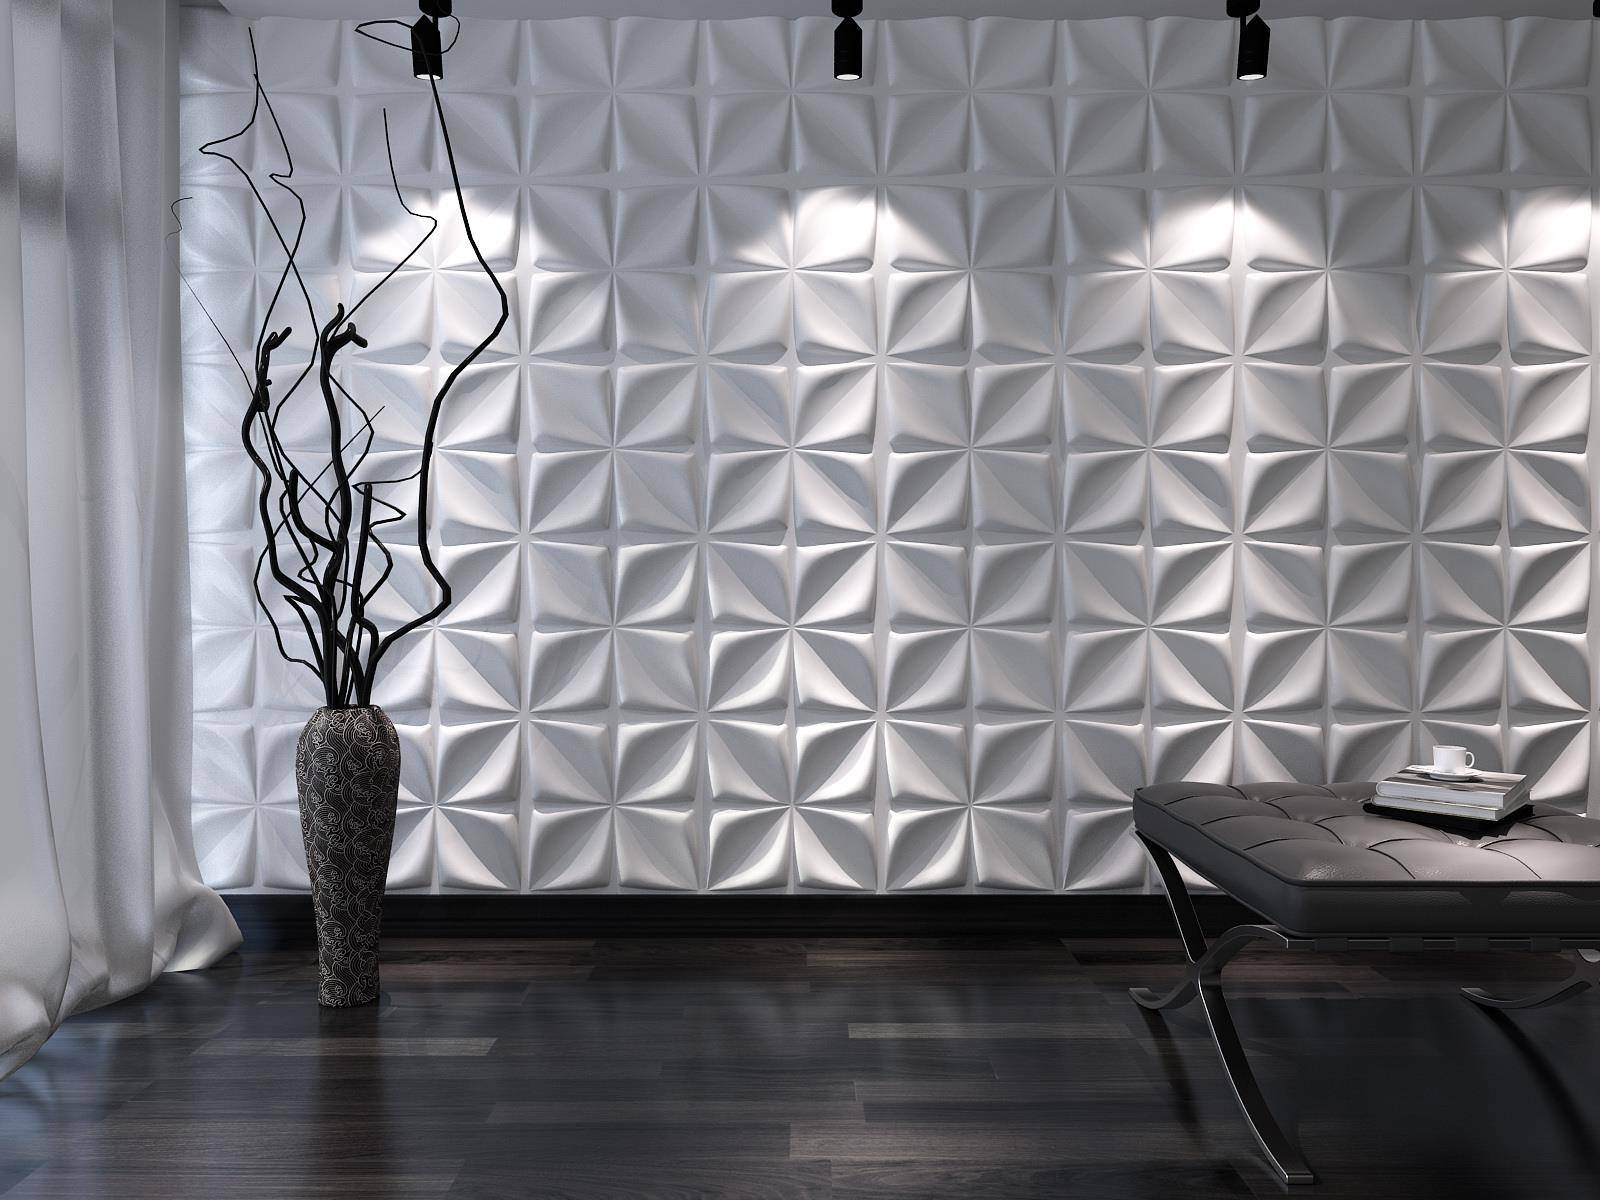 3d Wall Pictures Essence On Interior And Exterior Designs Together Pertaining To Latest 3d Wall Panels Wall Art (View 16 of 20)